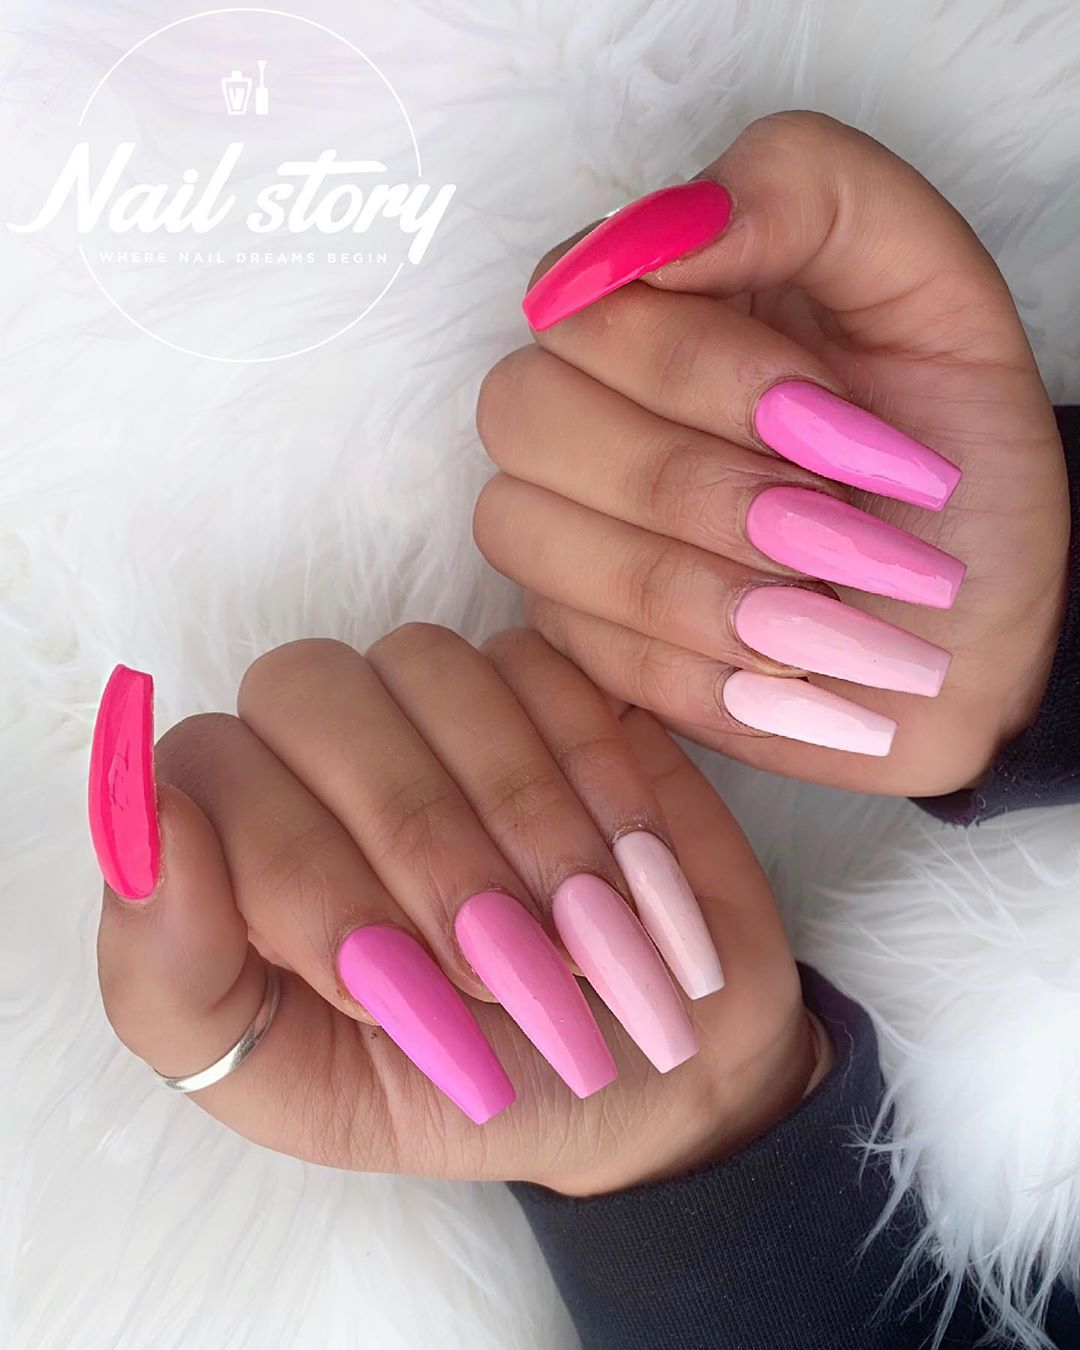 50 Shades Of Pink Gradient Pink Color Schemed Coffin Nails Nails Des Arylic Nails Pink Acrylic Nails Pink Nails